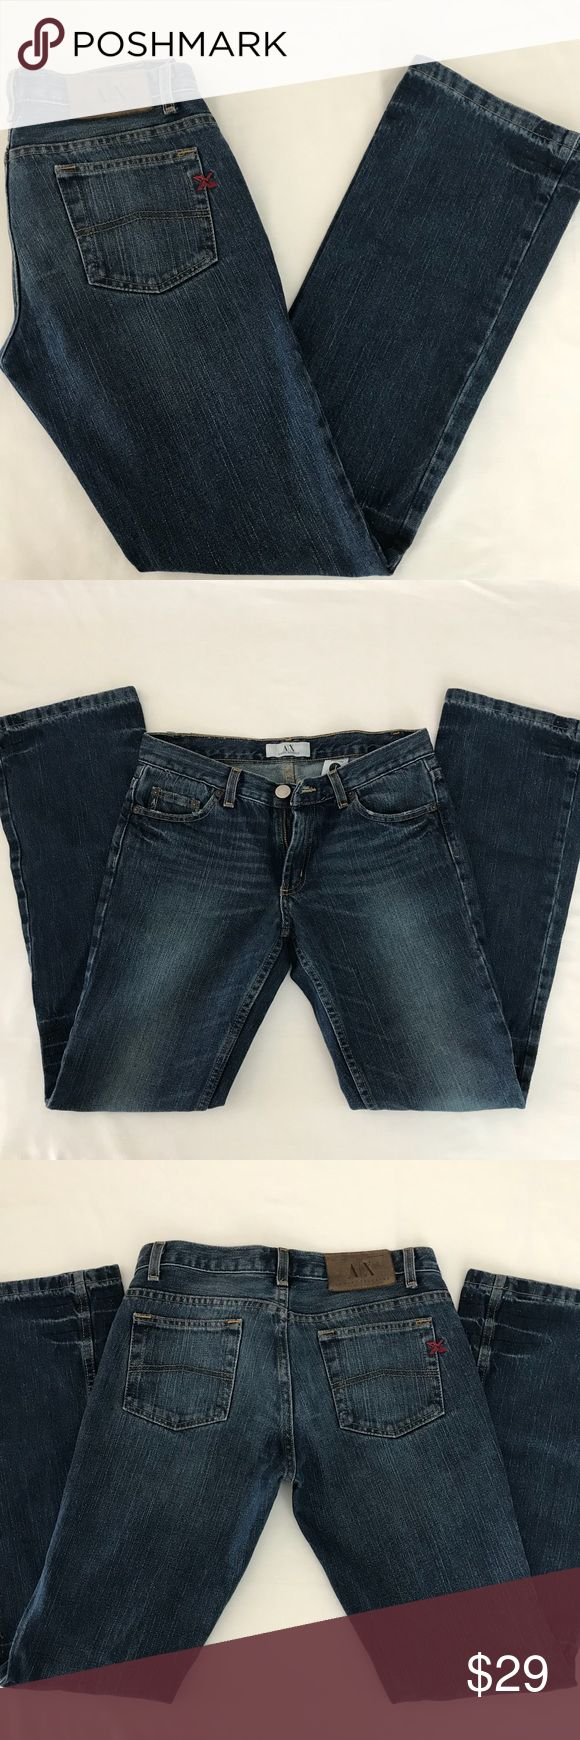 A/X Armani Exchange Womens boot fit jeans. A/X Armani Exchange Womens boot fit jeans. A/X Armani Exchange Jeans Boot Cut